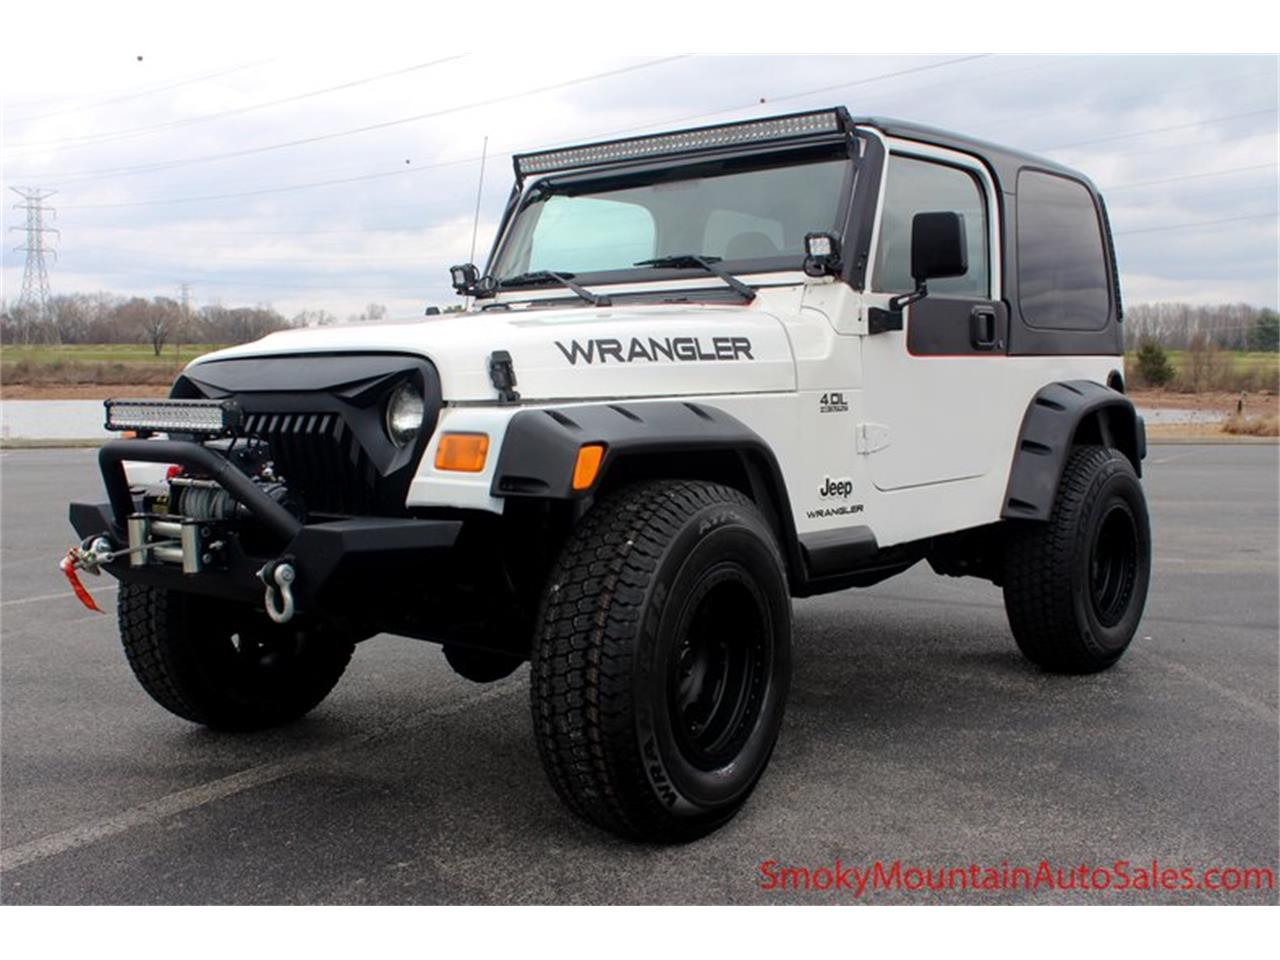 Large Picture of 2003 Wrangler located in Tennessee - $12,995.00 - P95Y